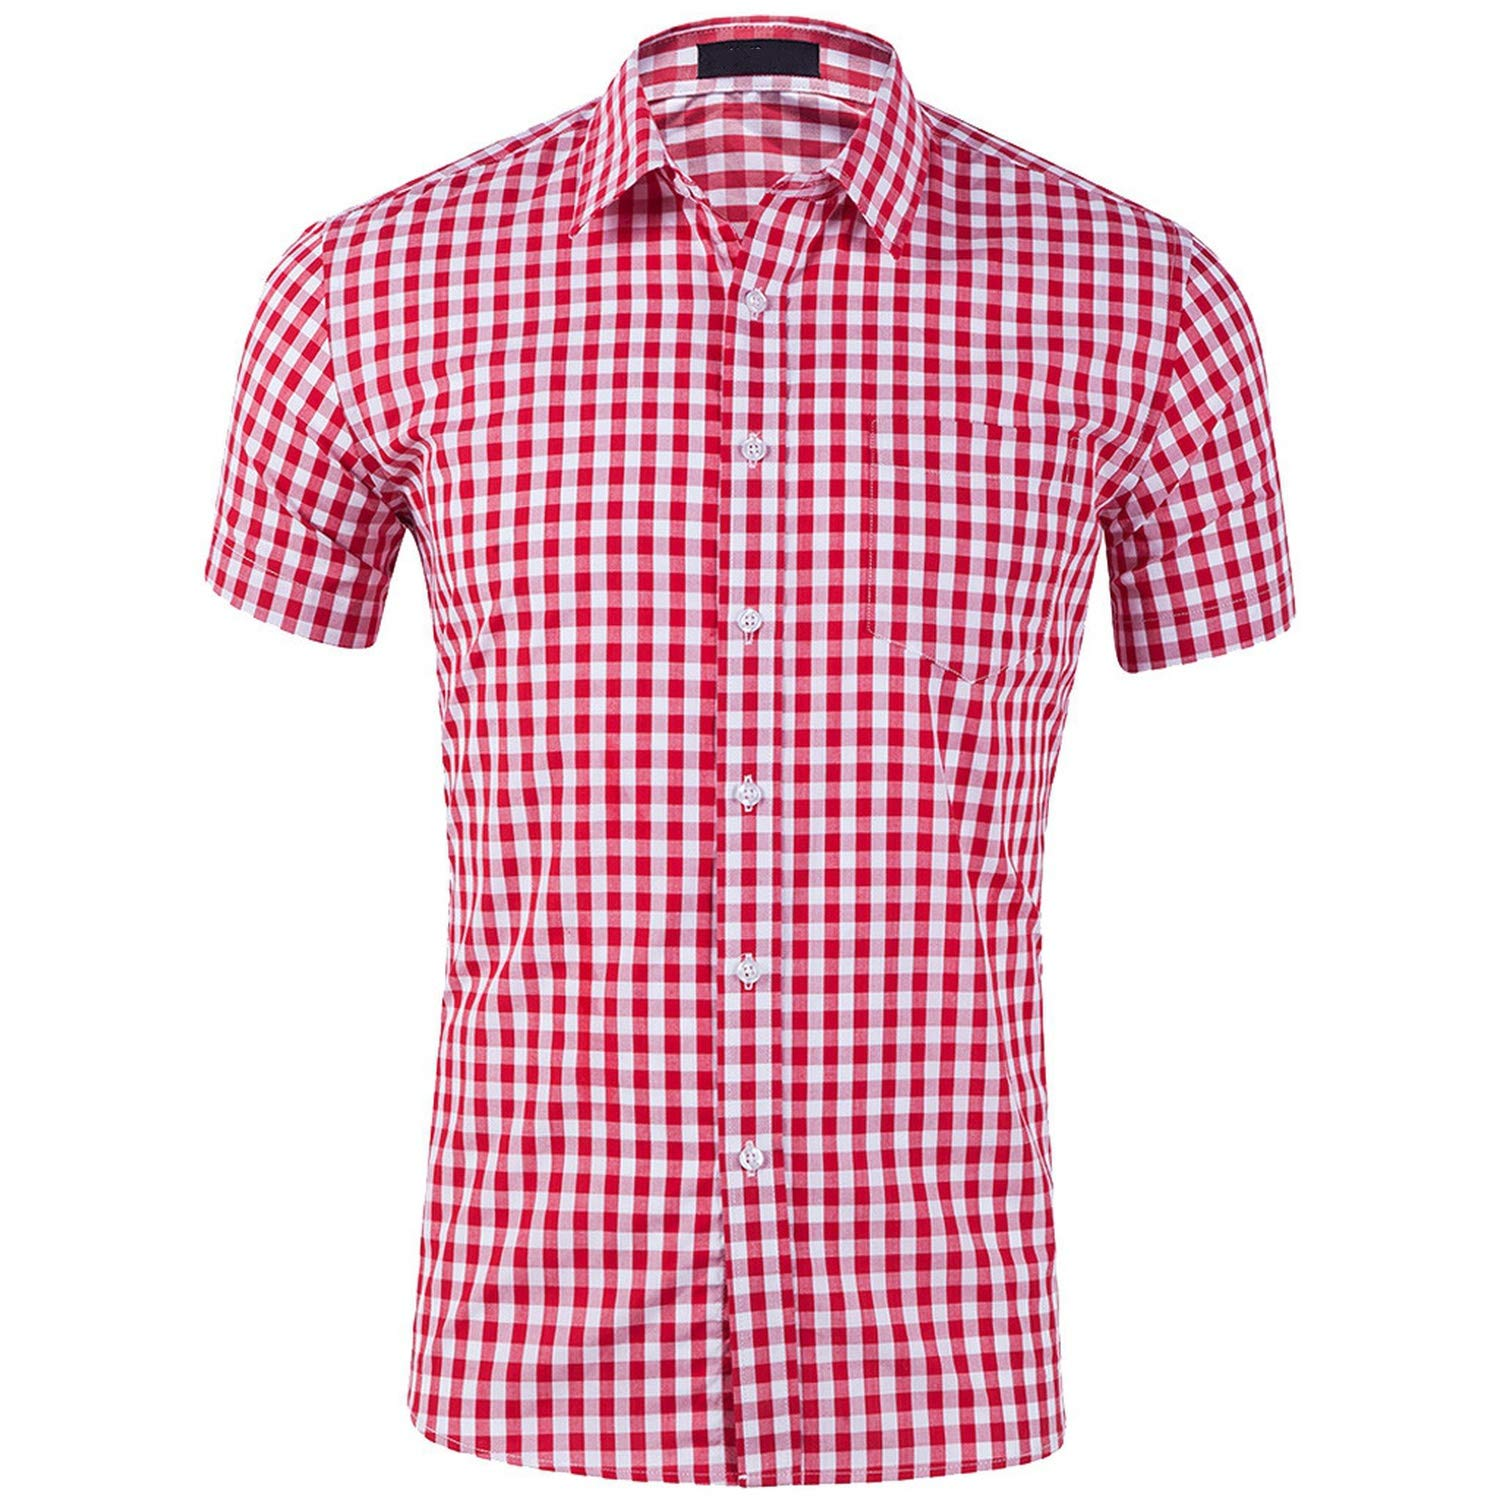 Summer Men Short Sleeve Shirt Cotton Casual Print Business Social Tops,Pink,XL,United States